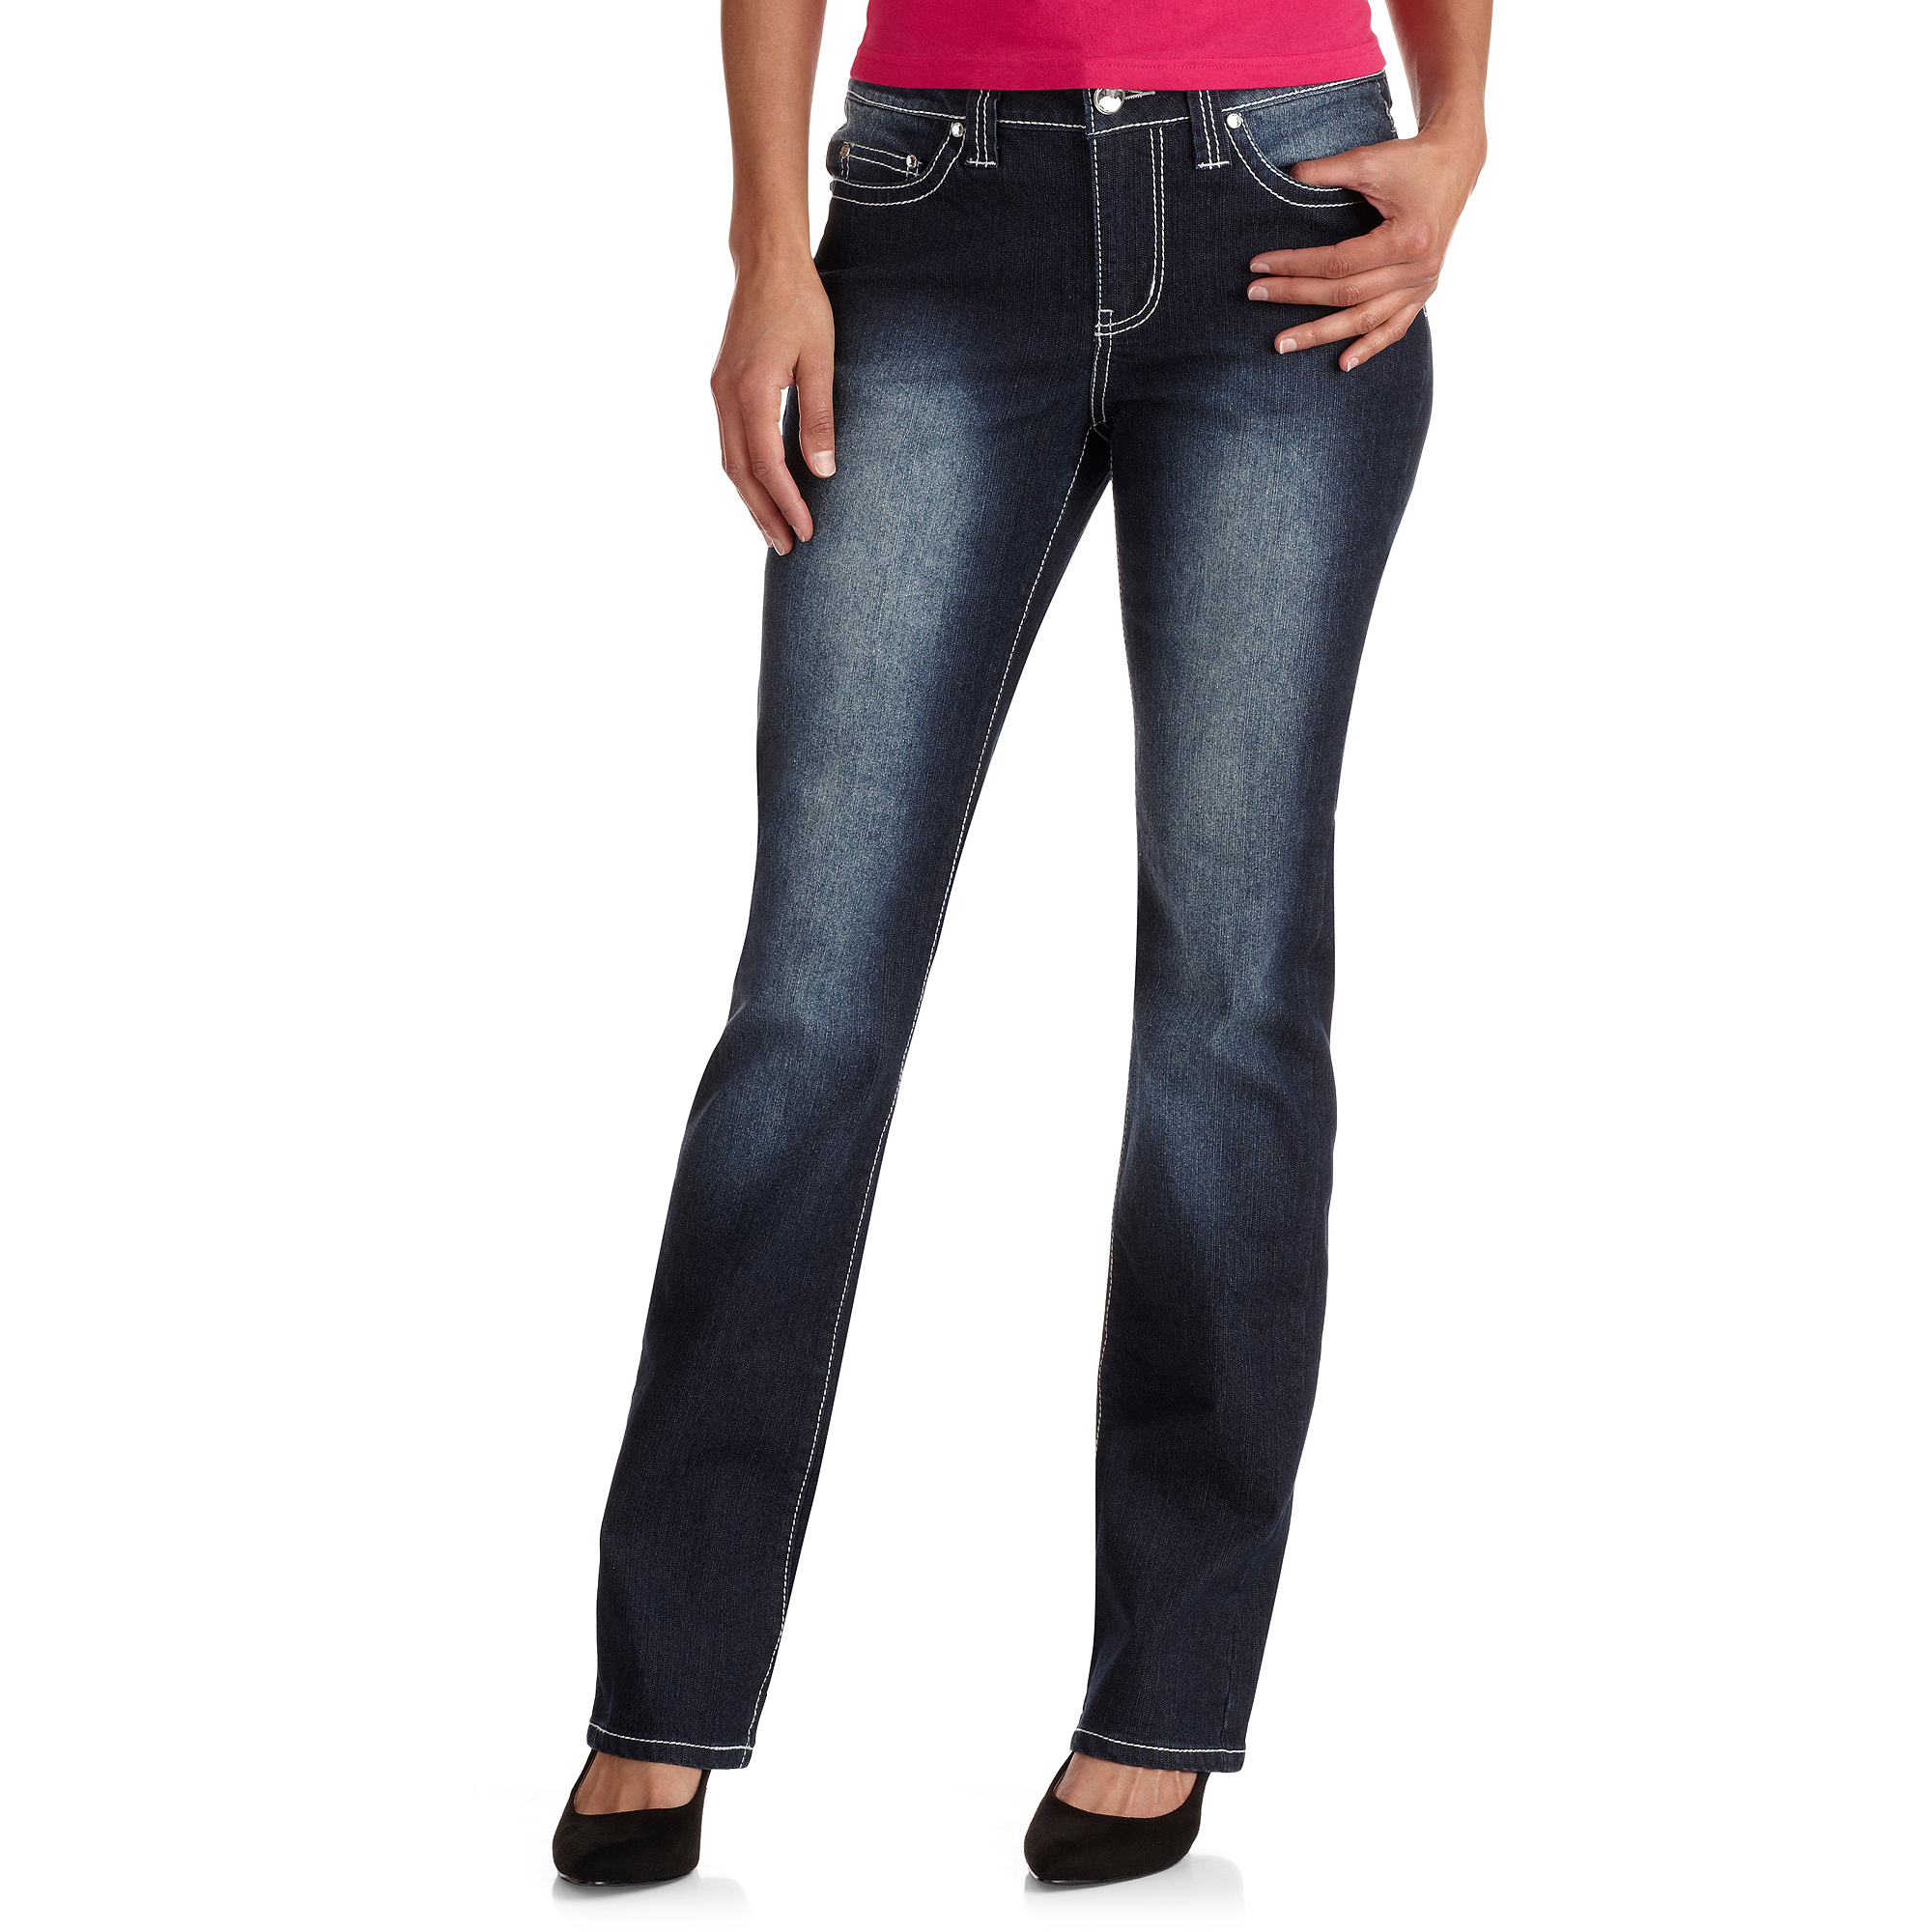 Red Rivet Women's Distressed Bootcut Jeans With Faux Leather Details